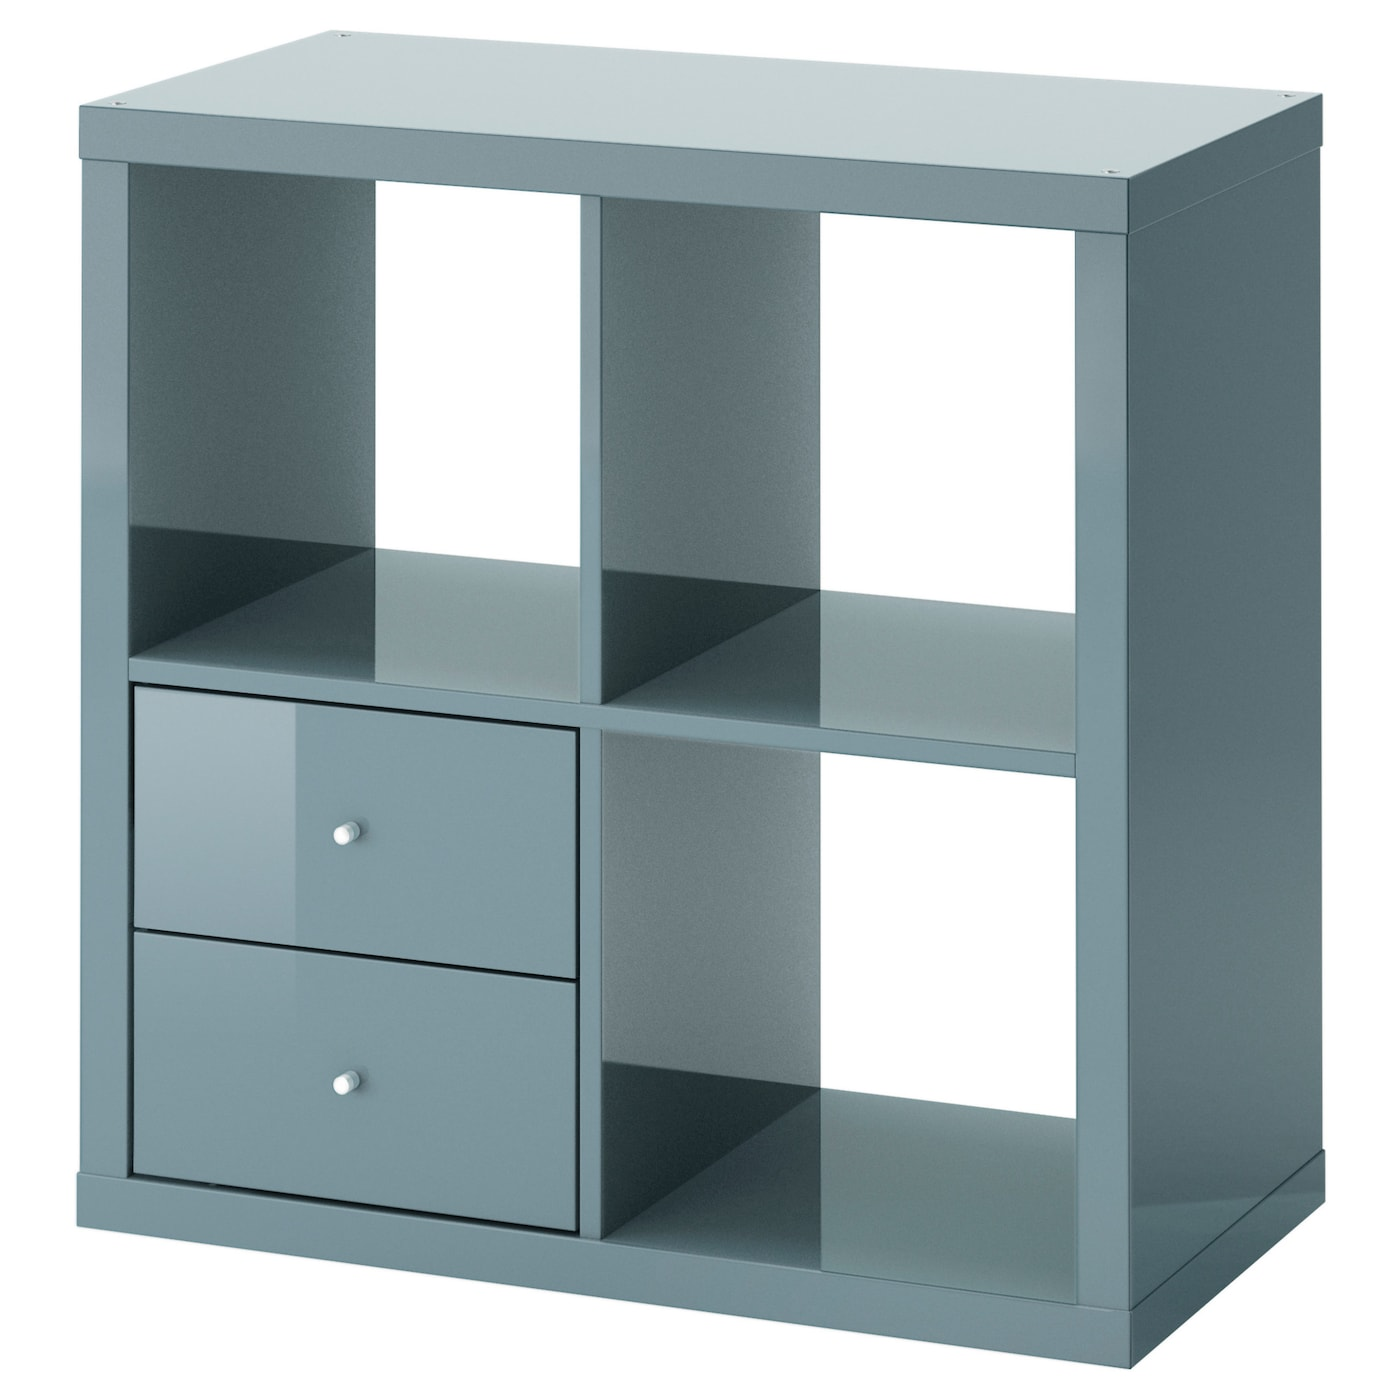 Kallax shelving unit with drawers high gloss grey for Meuble 5 cases ikea